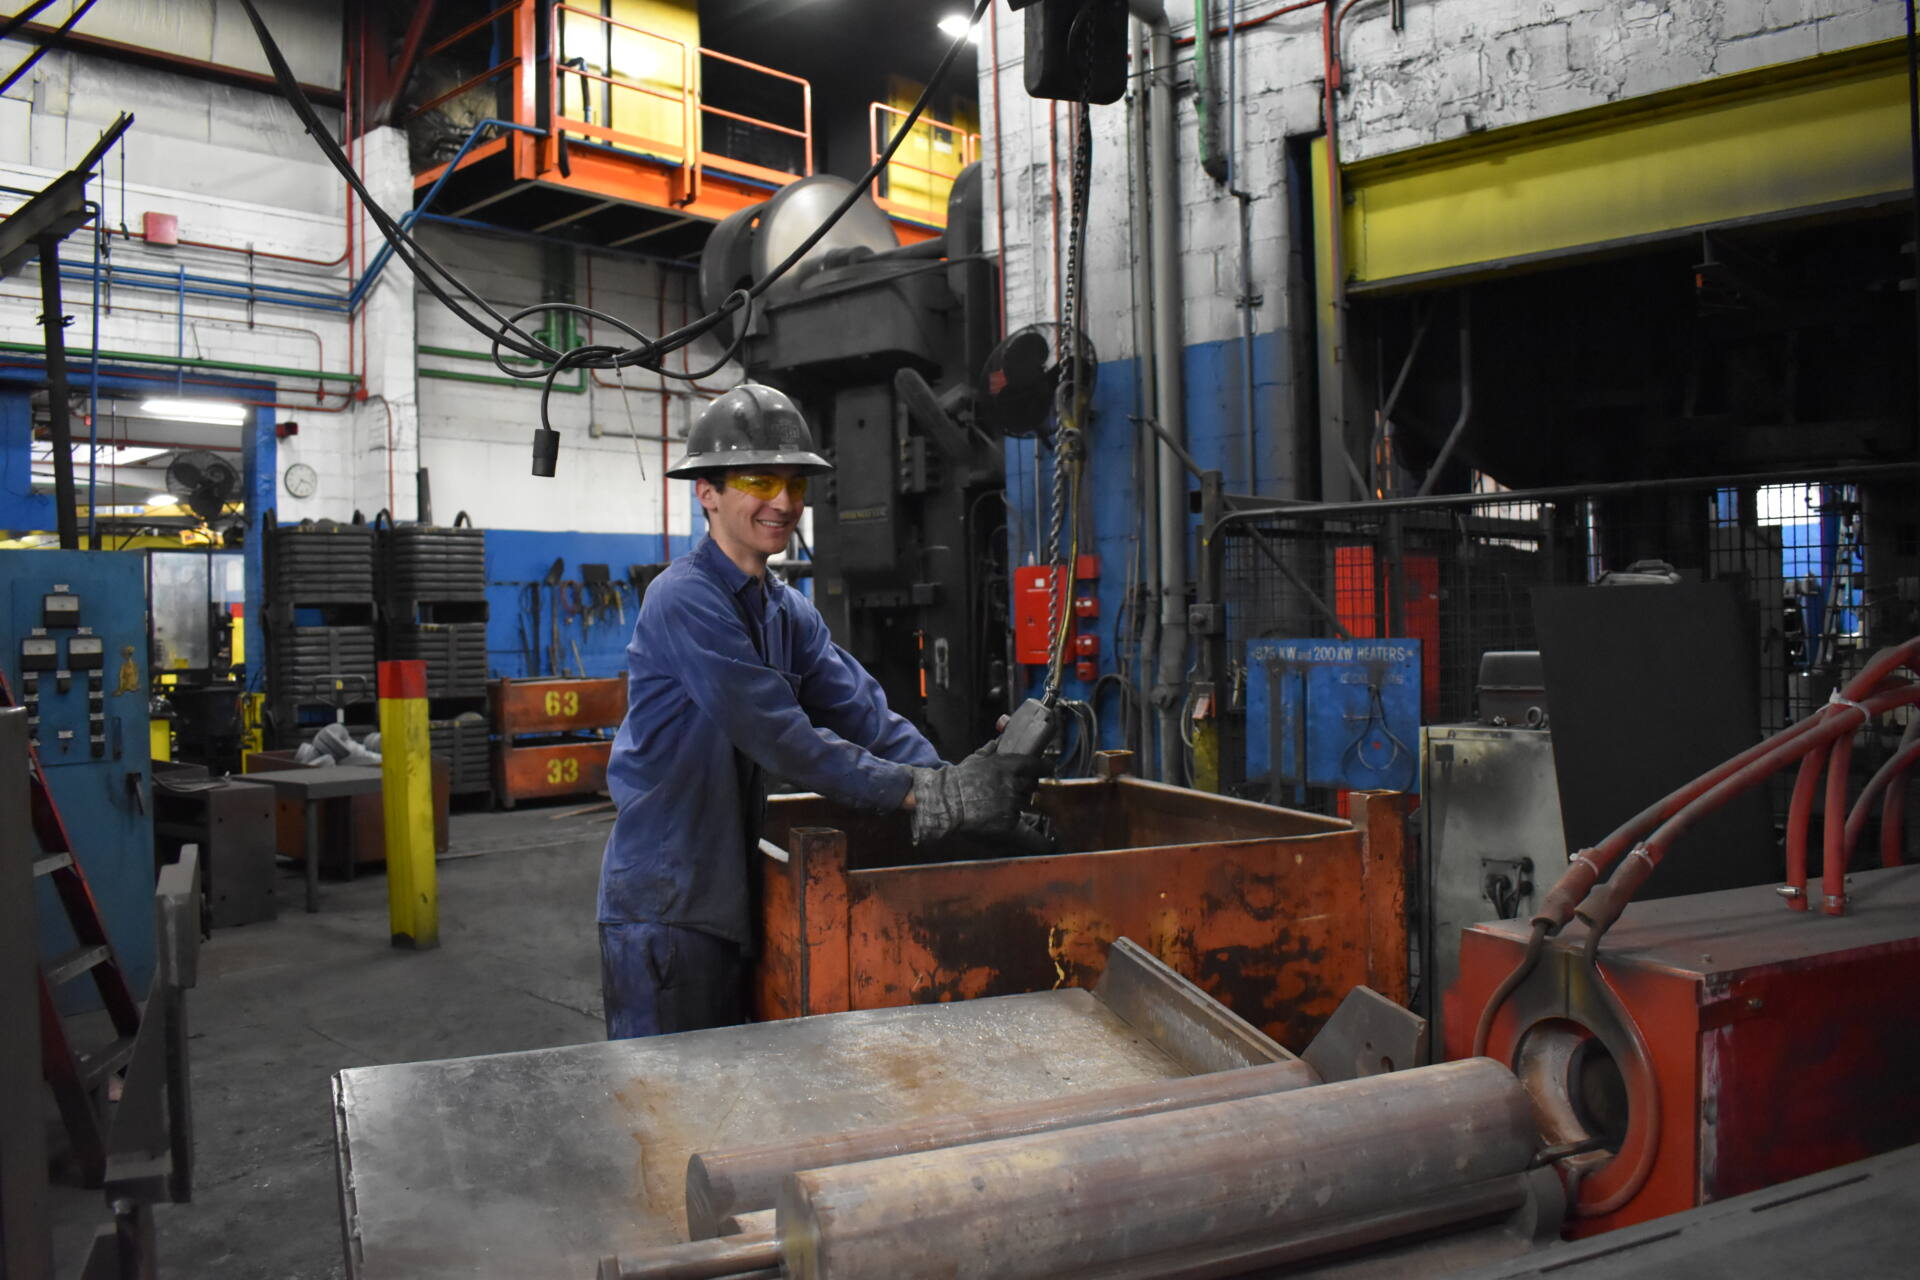 Noah, a student at the University of Wisconsin, works at Engel Tool and Forge on the manufacturing floor during winter break